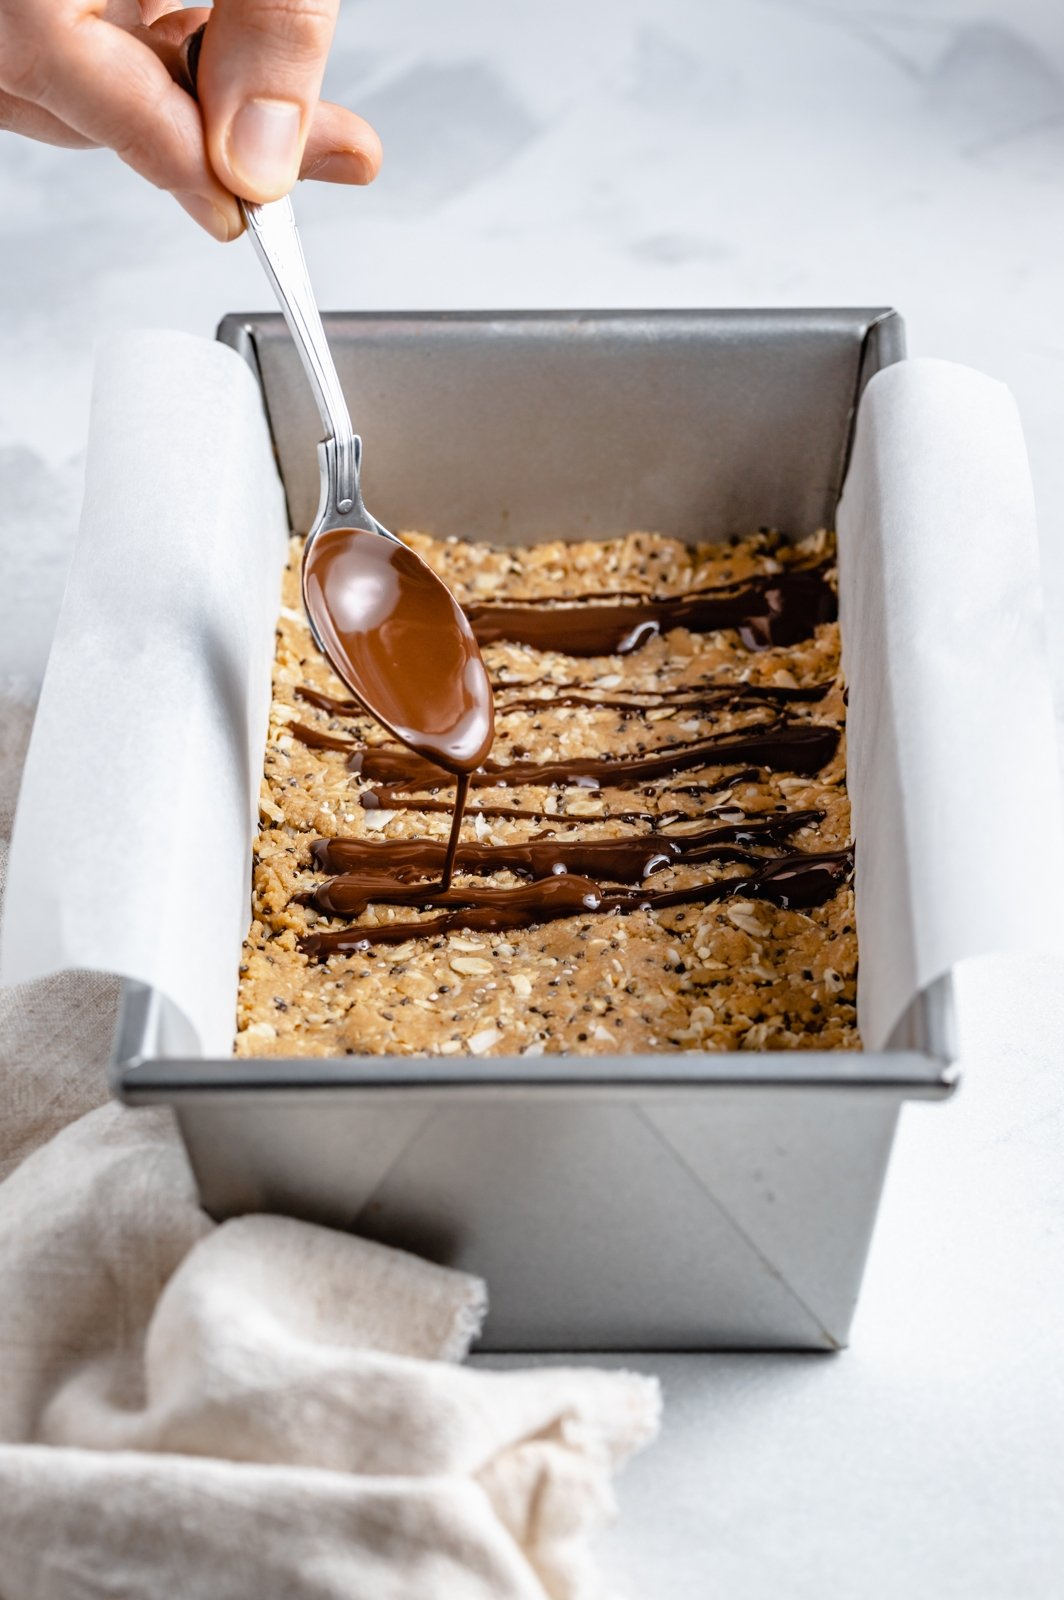 drizzling chocolate onto coconut protein bars